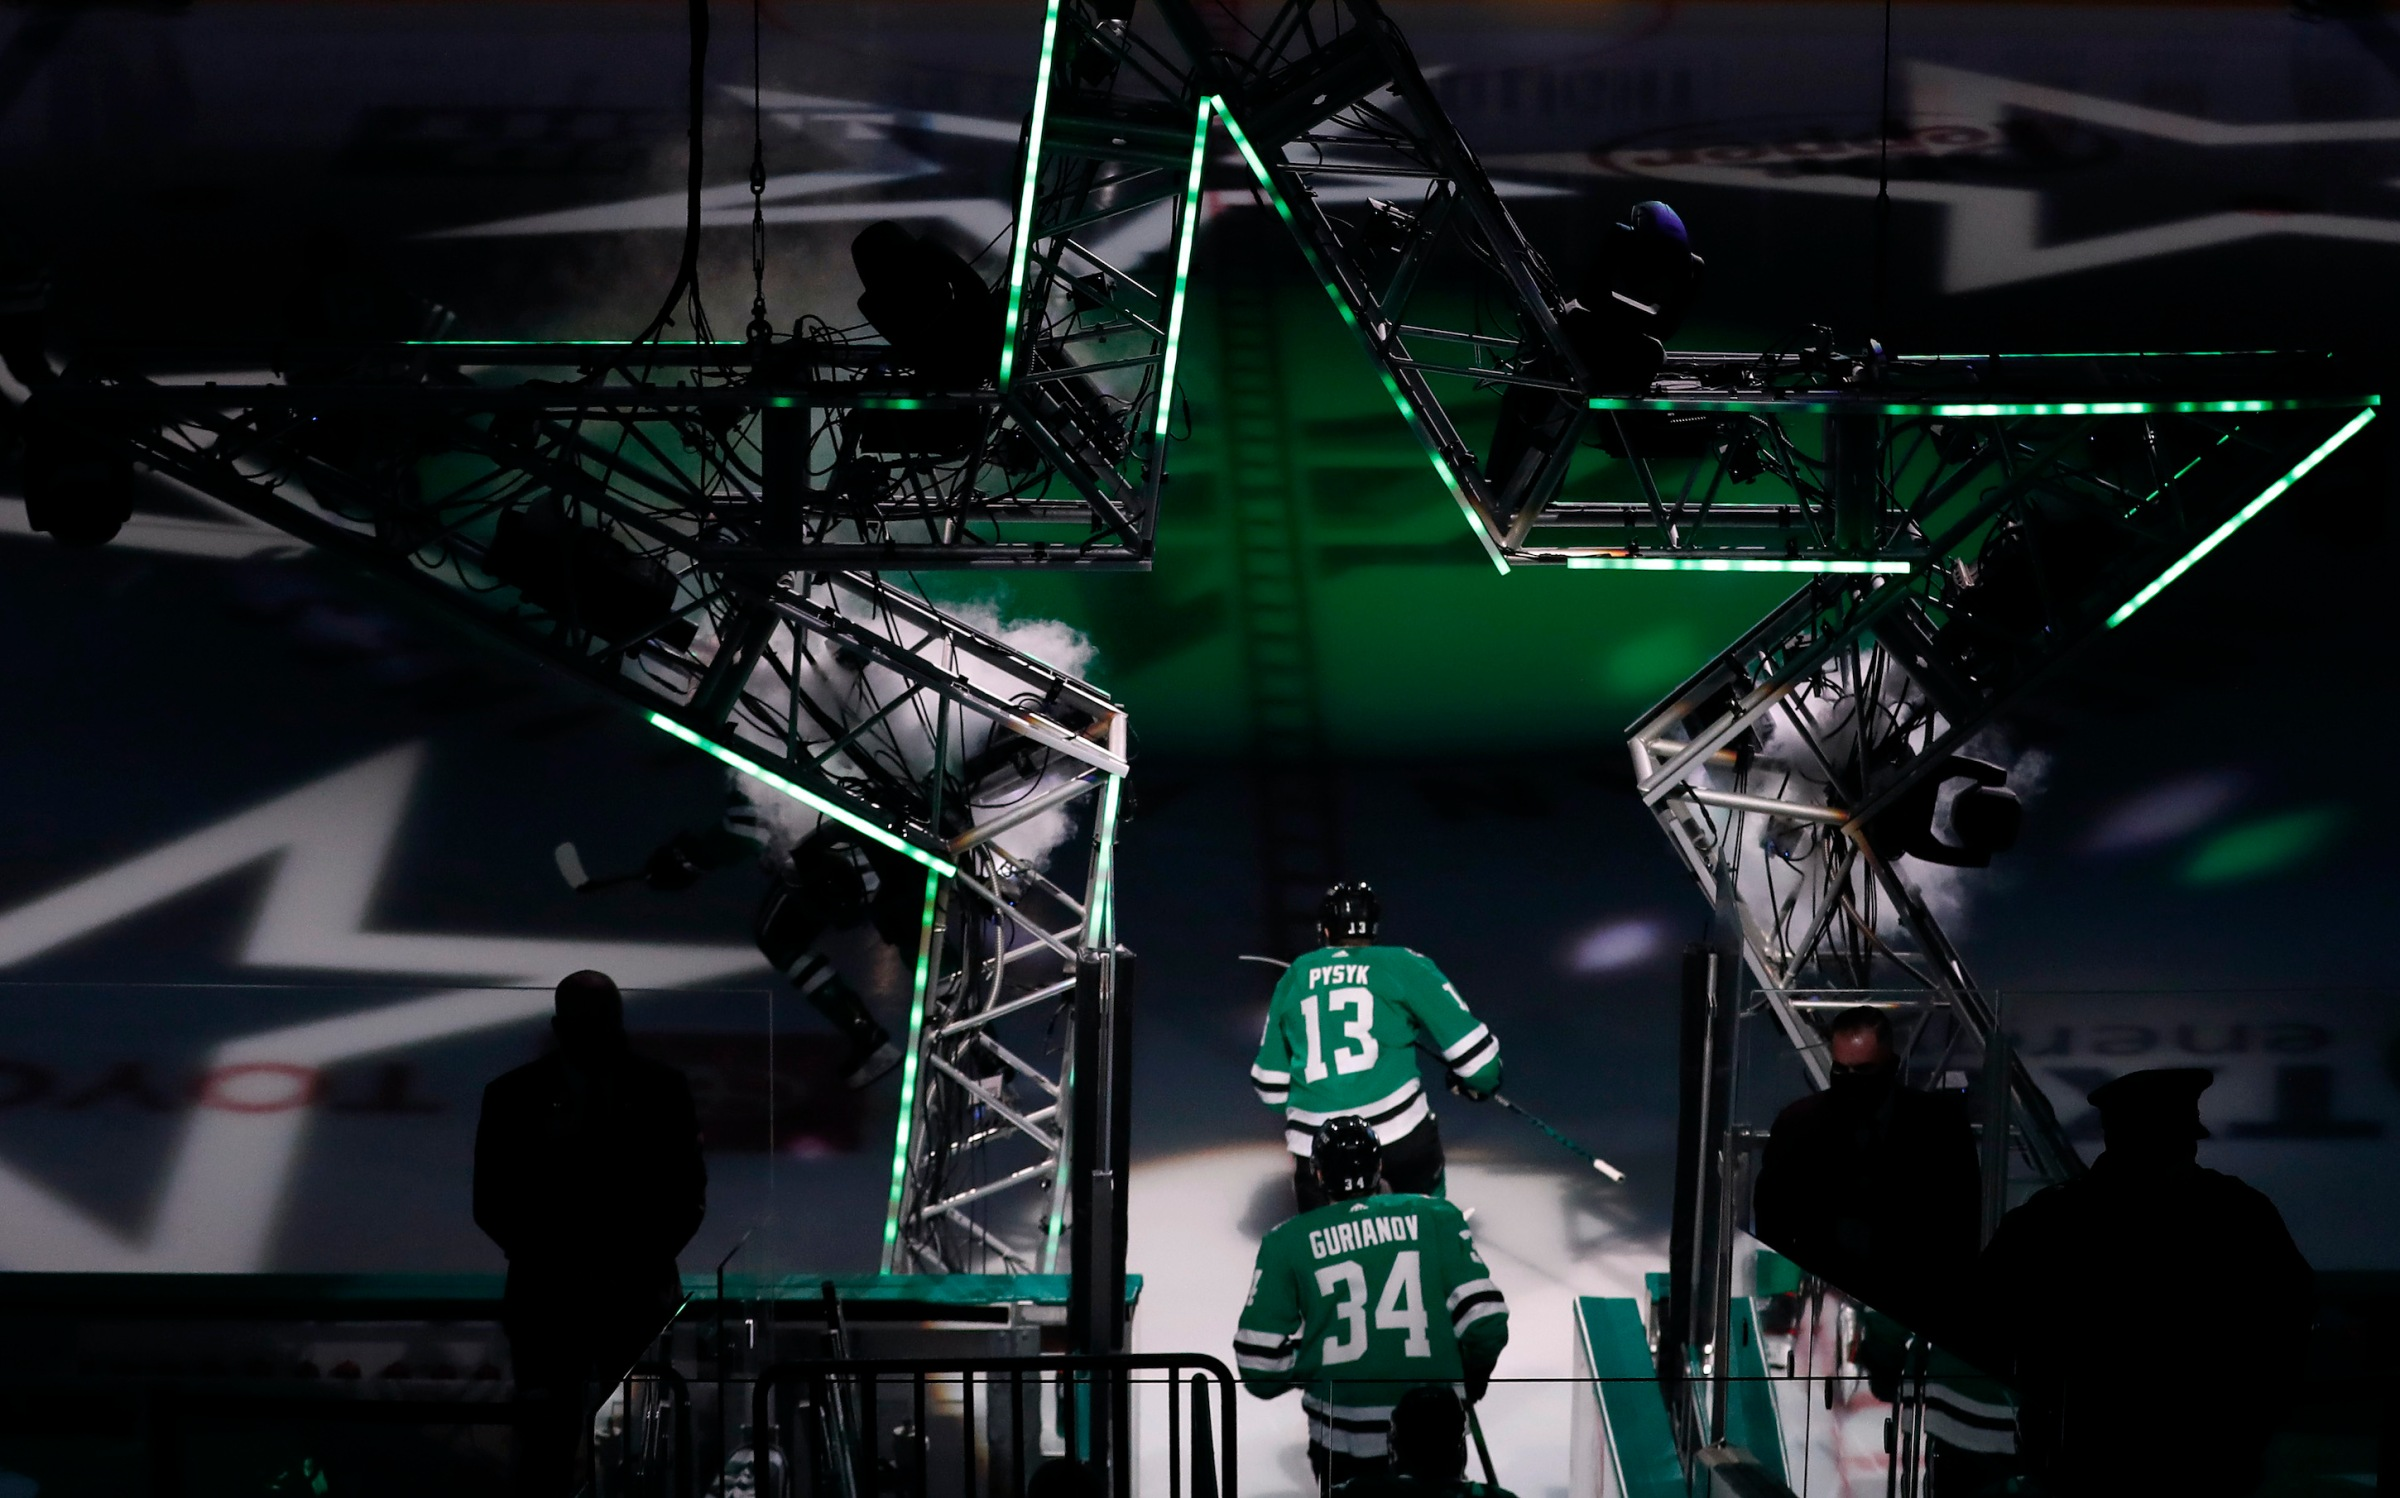 Mark Pysyk #13 of the Dallas Stars and Denis Gurianov #34 of the Dallas Stars take the ice against the Chicago Blackhawks at American Airlines Center on February 09, 2021 in Dallas, Texas.